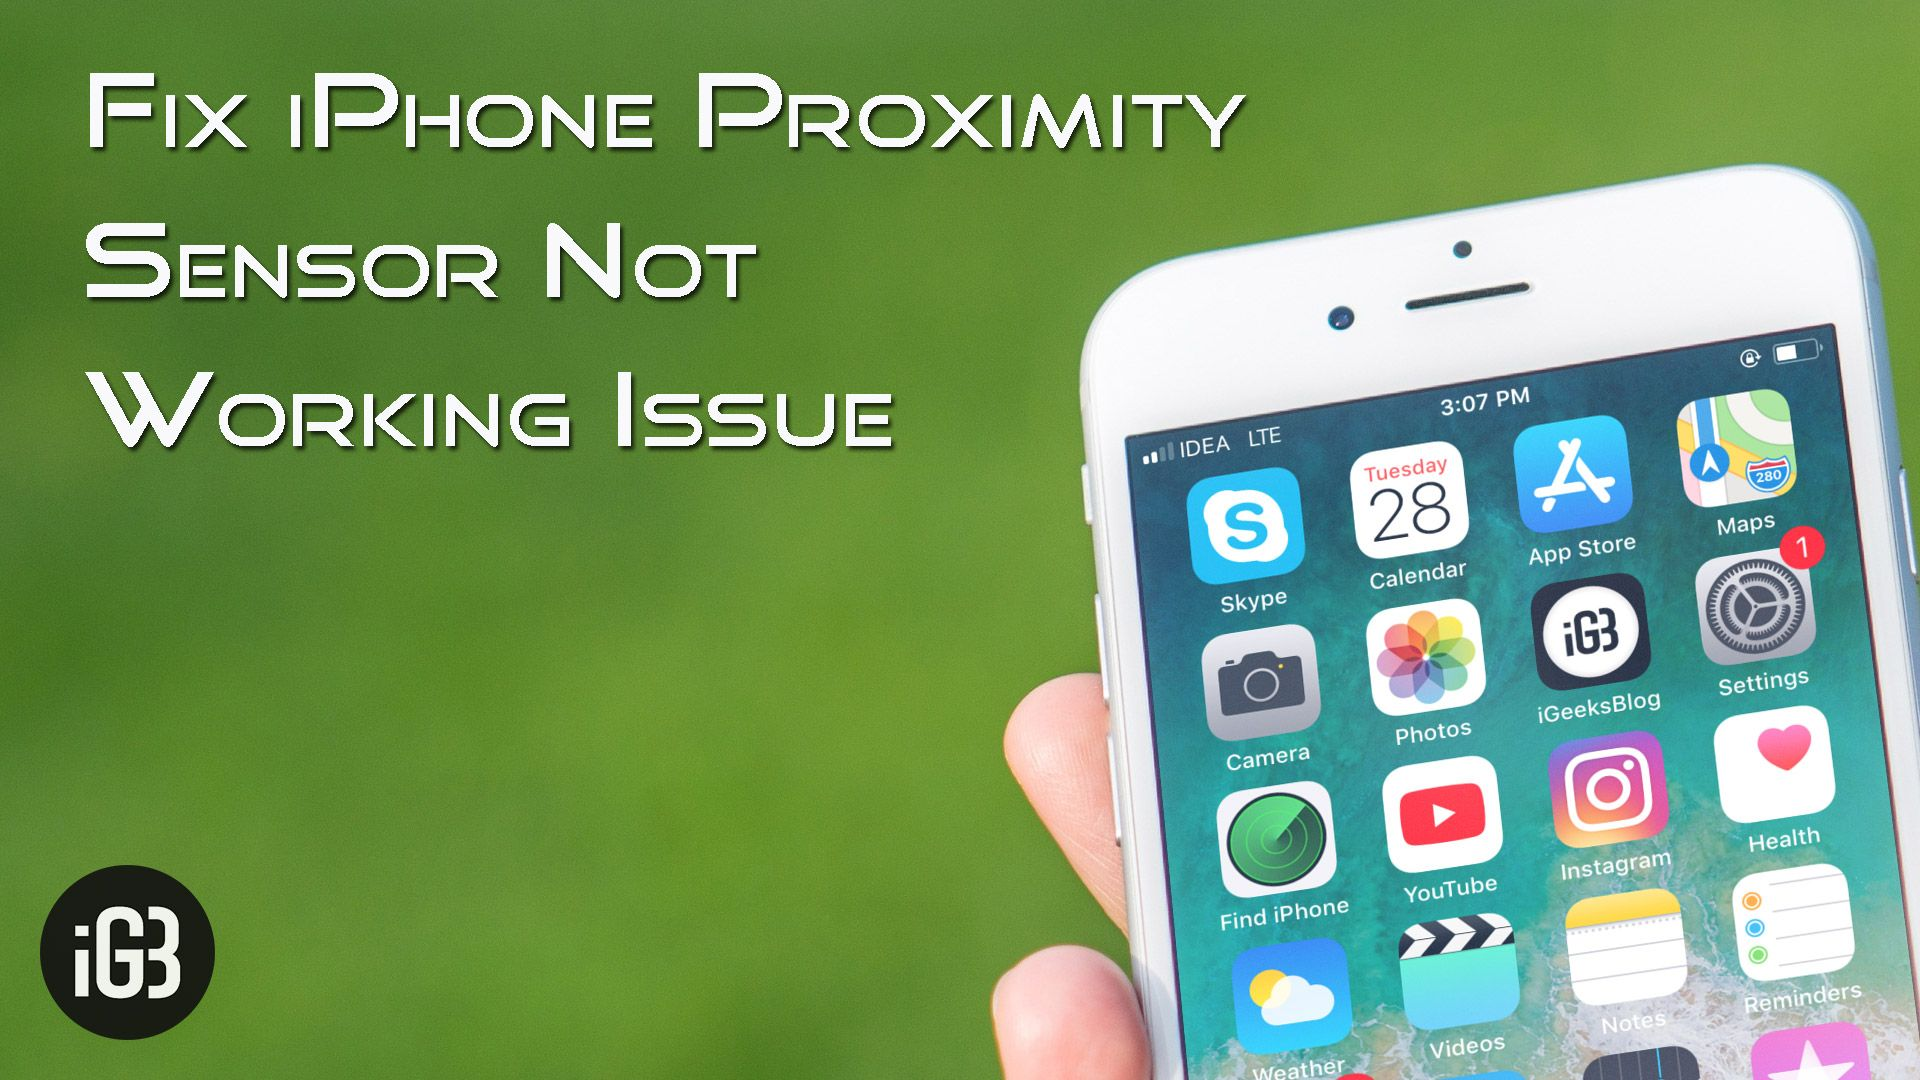 iPhone Proximity Sensor Not Working? Here is How to Fix